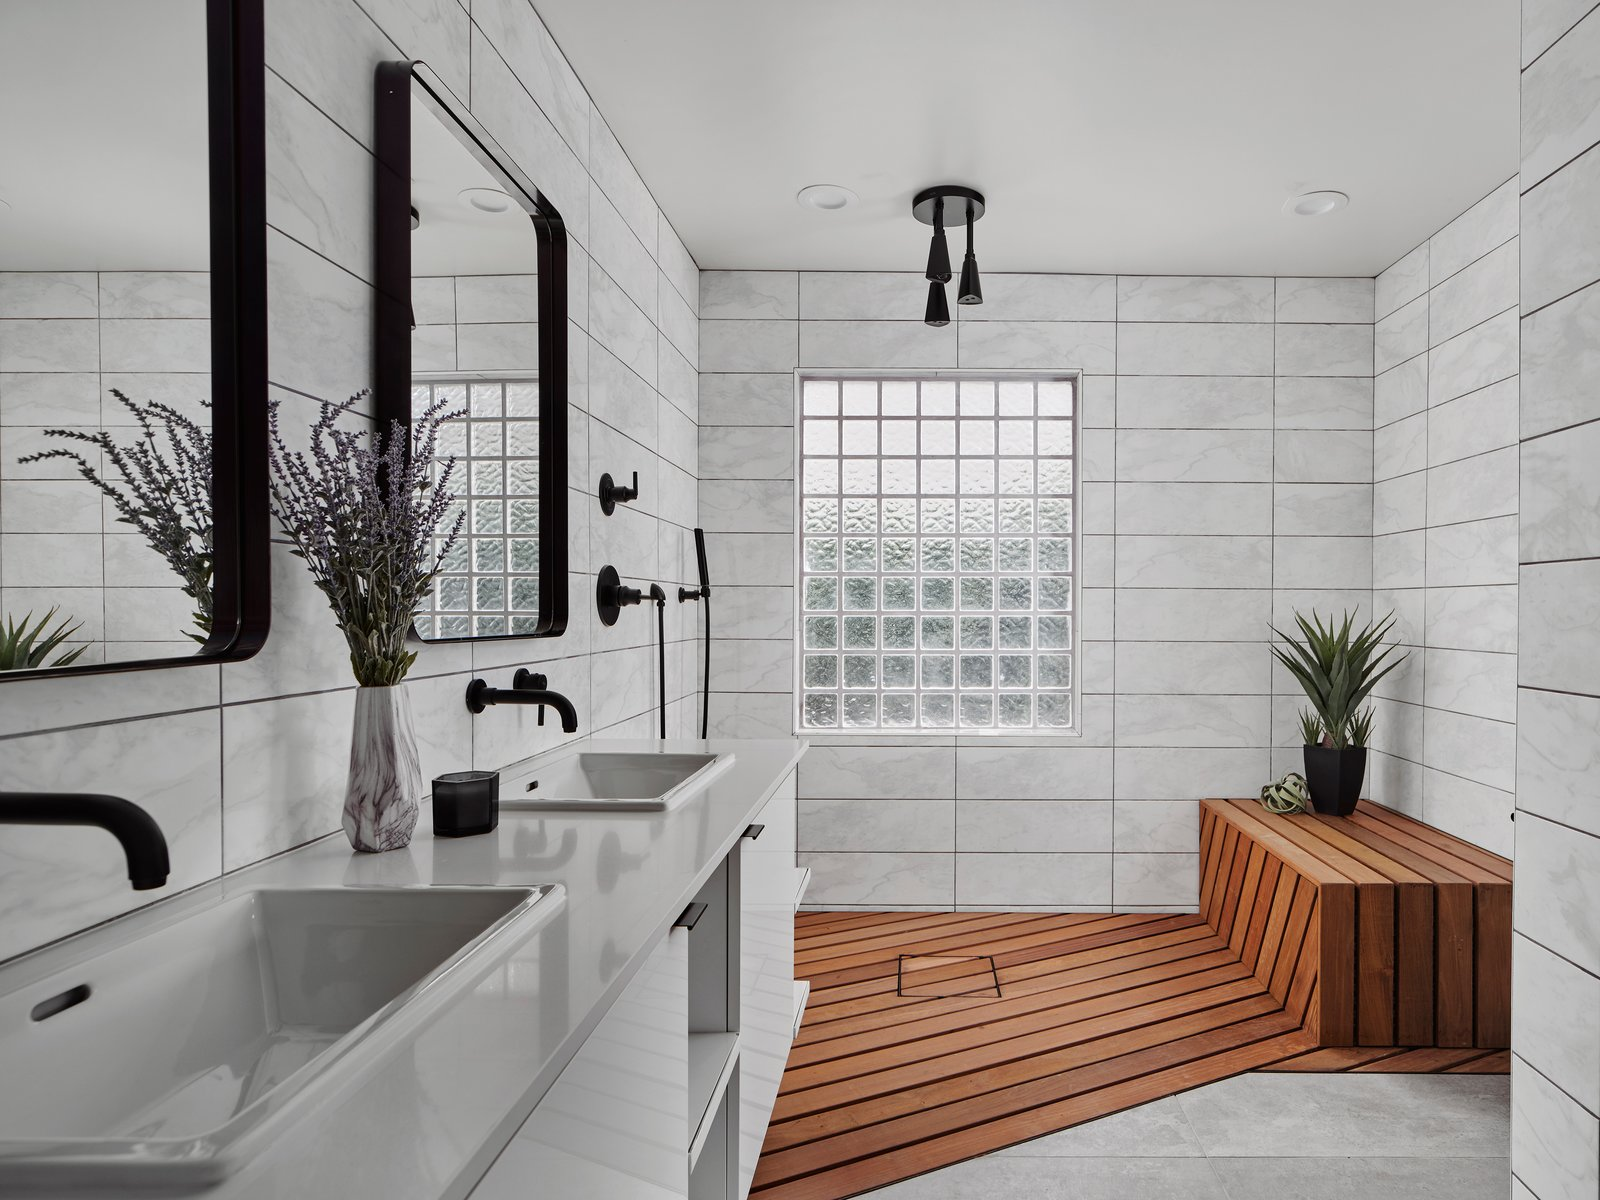 Bath Room, Engineered Quartz Counter, Open Shower, Porcelain Tile Floor, Porcelain Tile Wall, and Drop In Sink The master shower features an Ipe shower floor/bench and the vanity has cabinetry by Lignum Cabinets with custom open shelving that extends into the shower.  Details